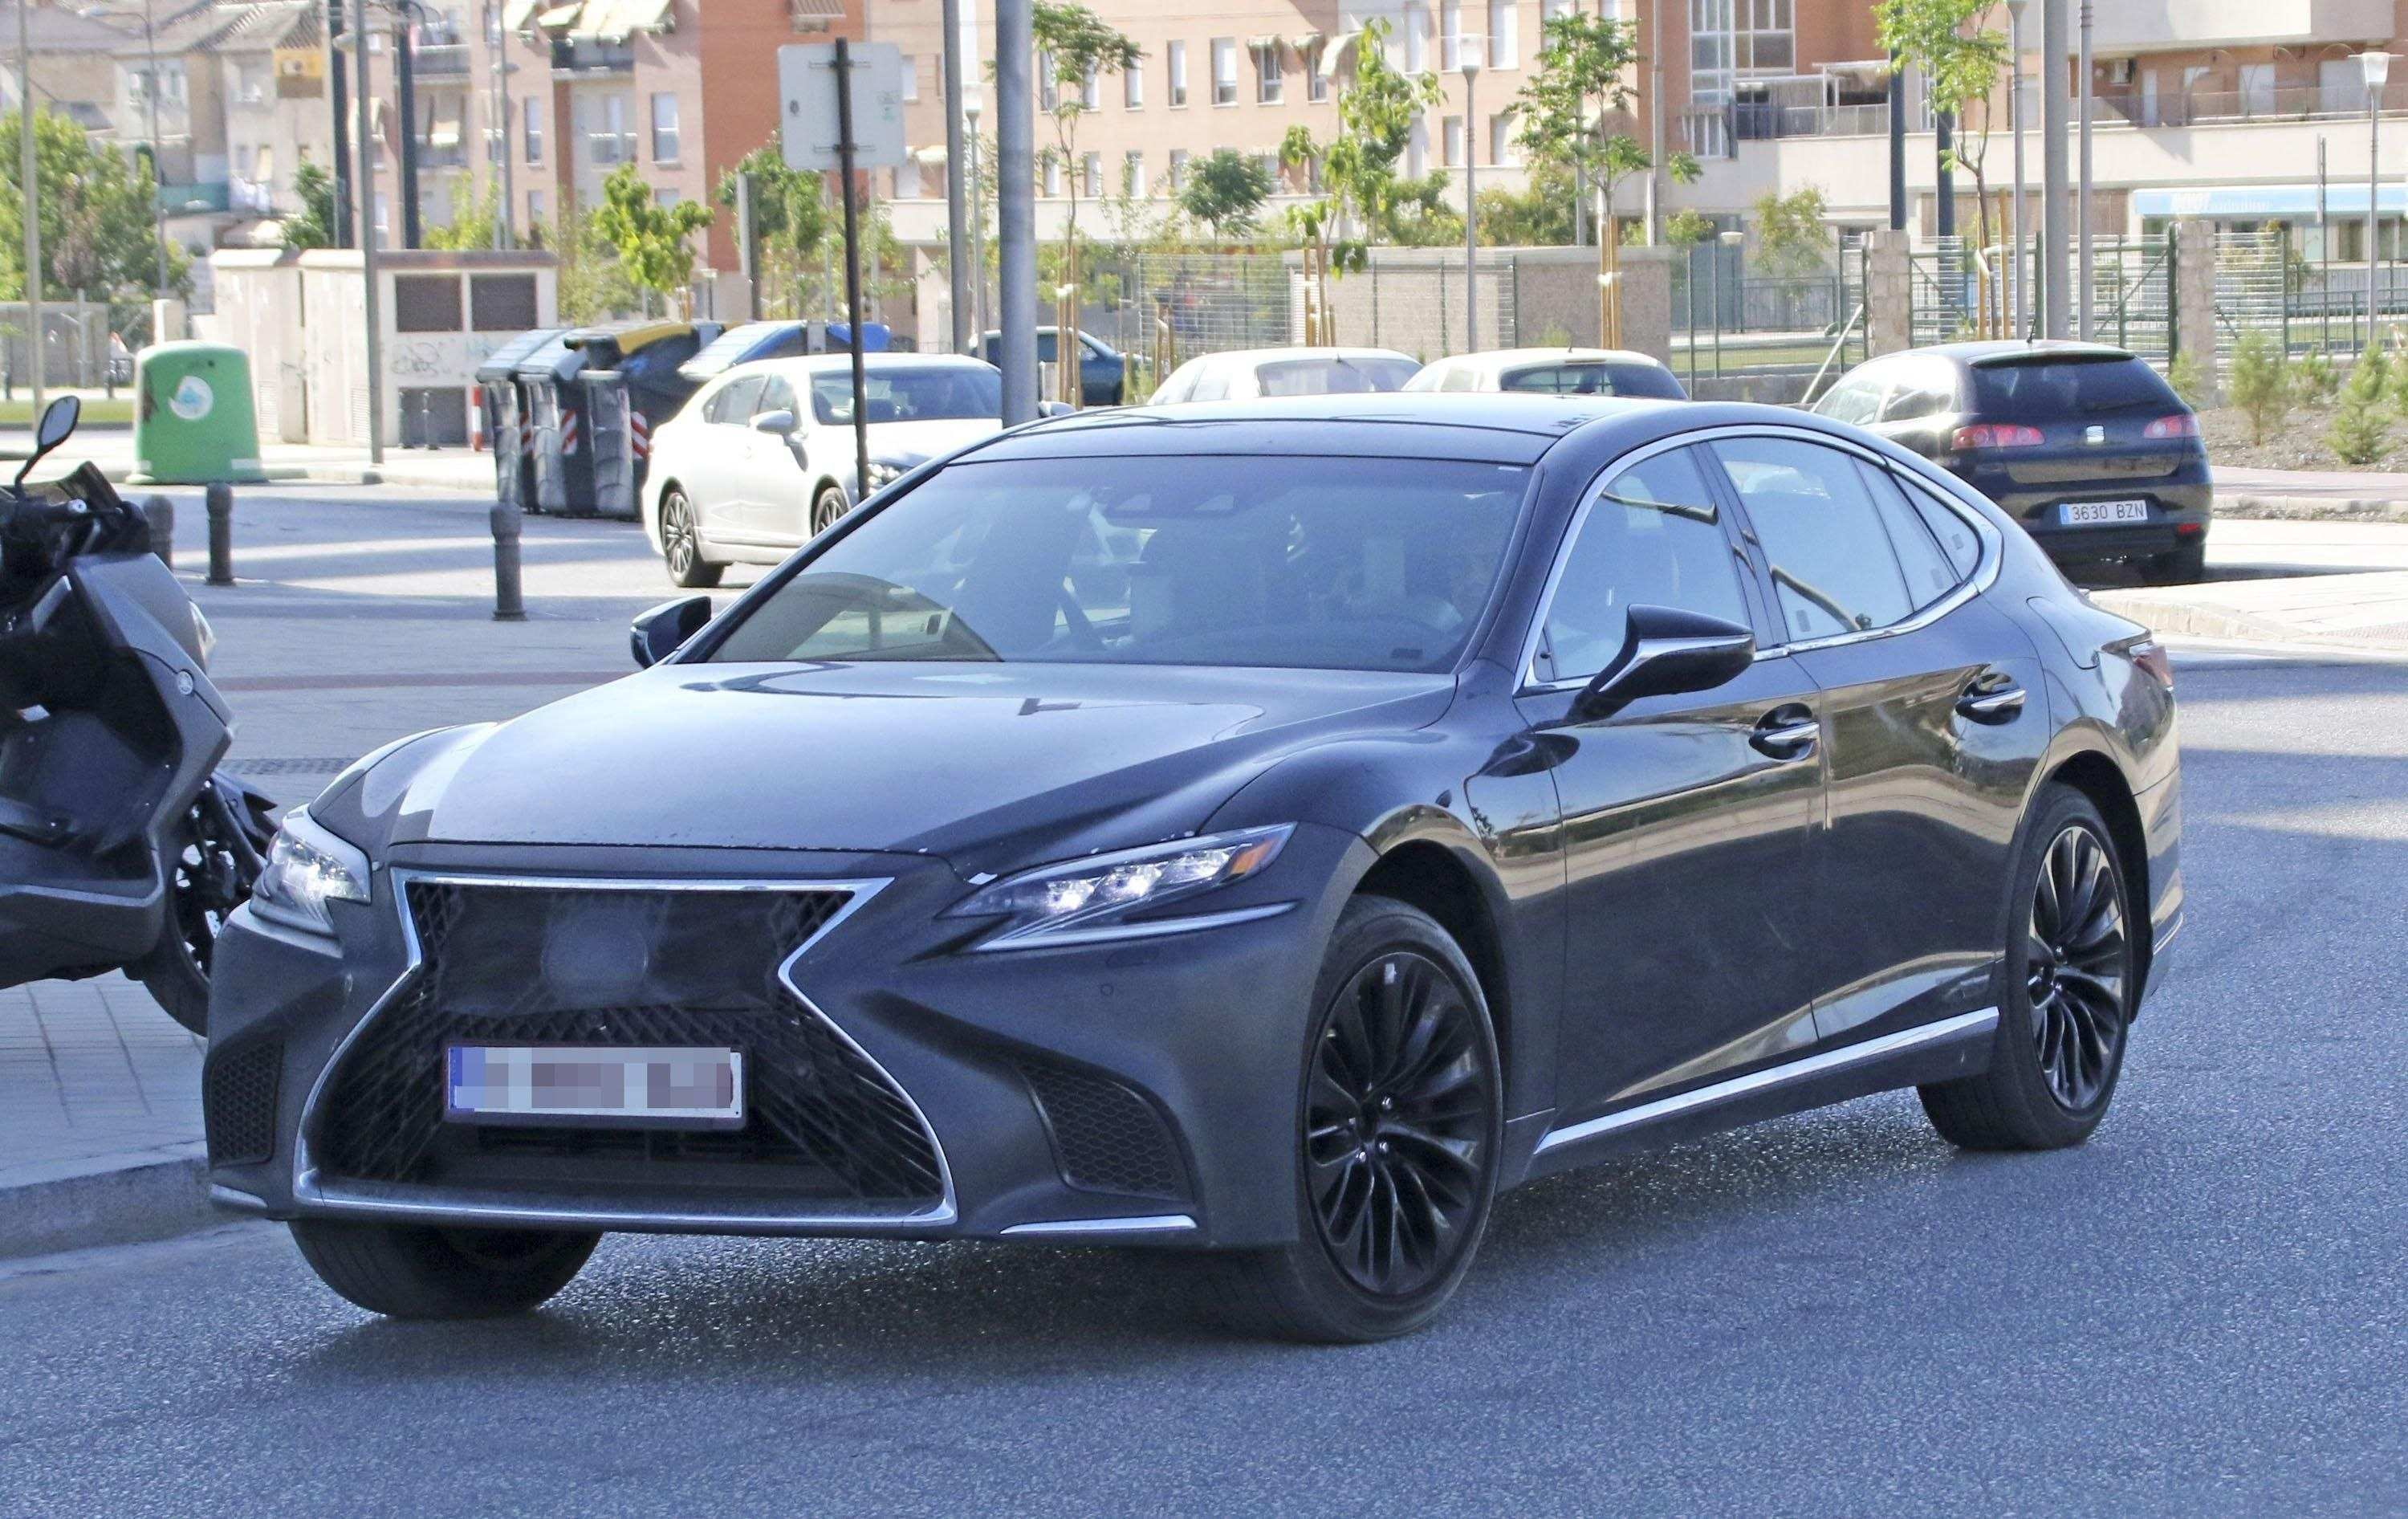 84 All New When Do 2019 Lexus Come Out Prices by When Do 2019 Lexus Come Out